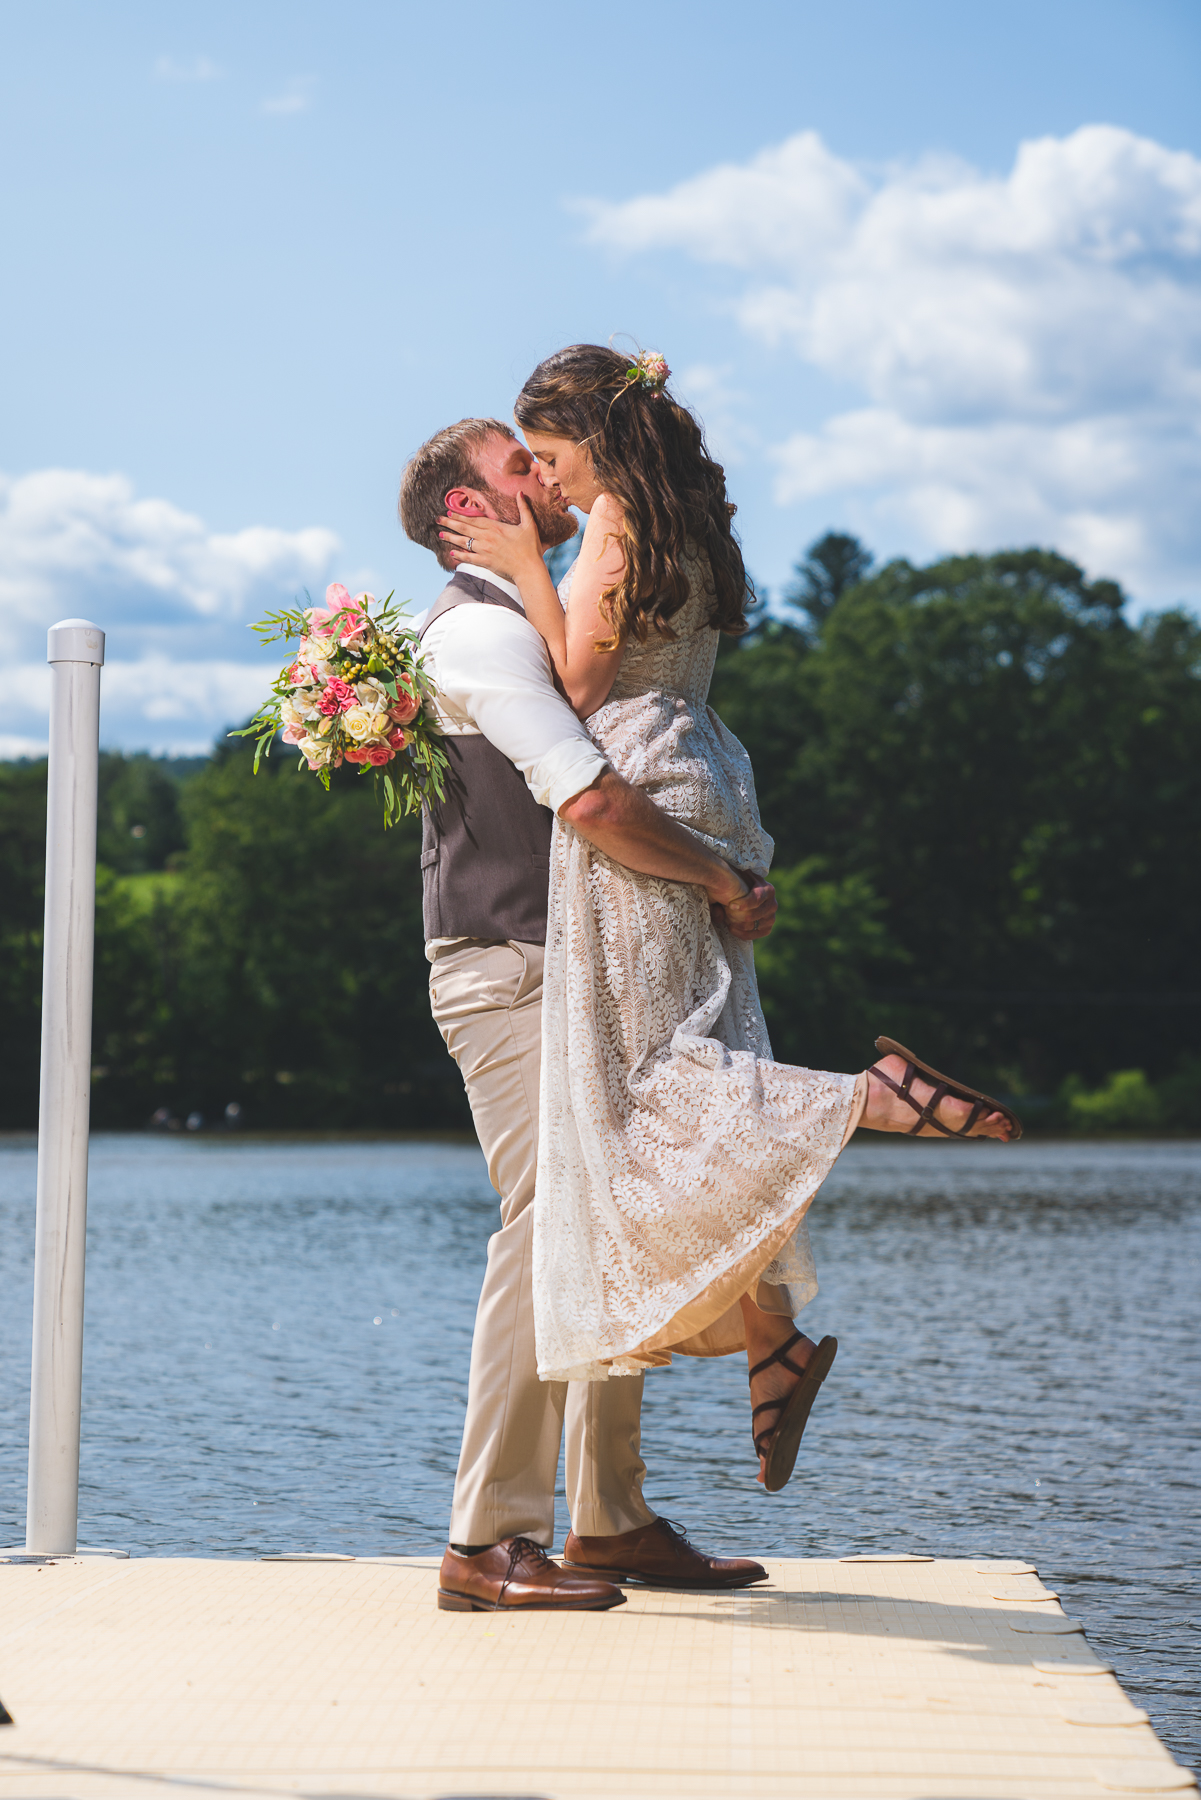 Another stunning photo of the Bride & Groom at Sweet Arrow Lake County Park, Pine Grove, PA